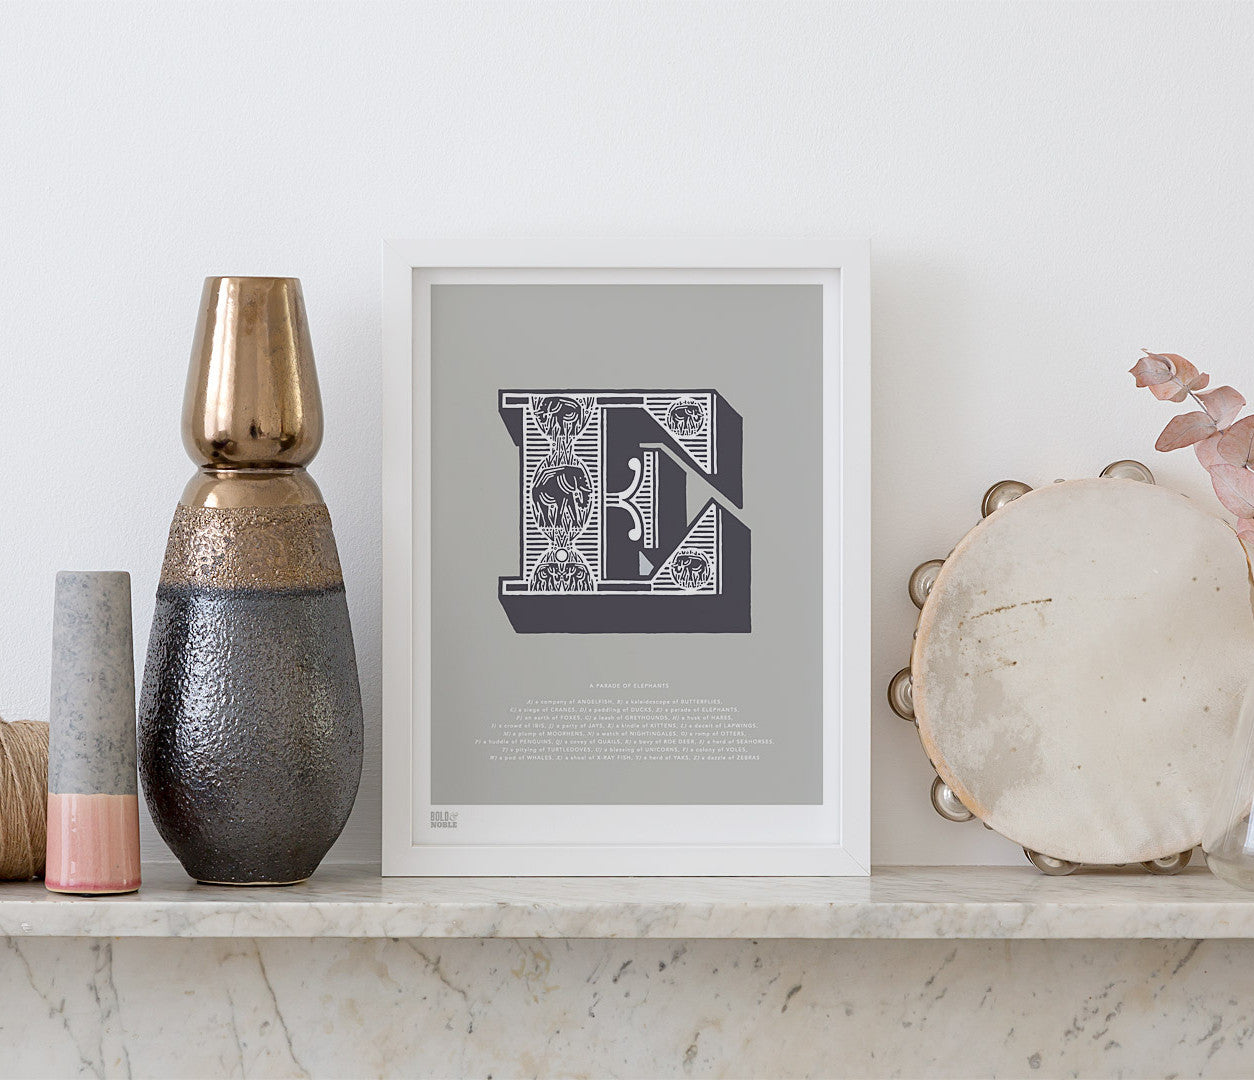 Pictures and Wall Art, Screen Printed Illustrated Letter E design in putty grey